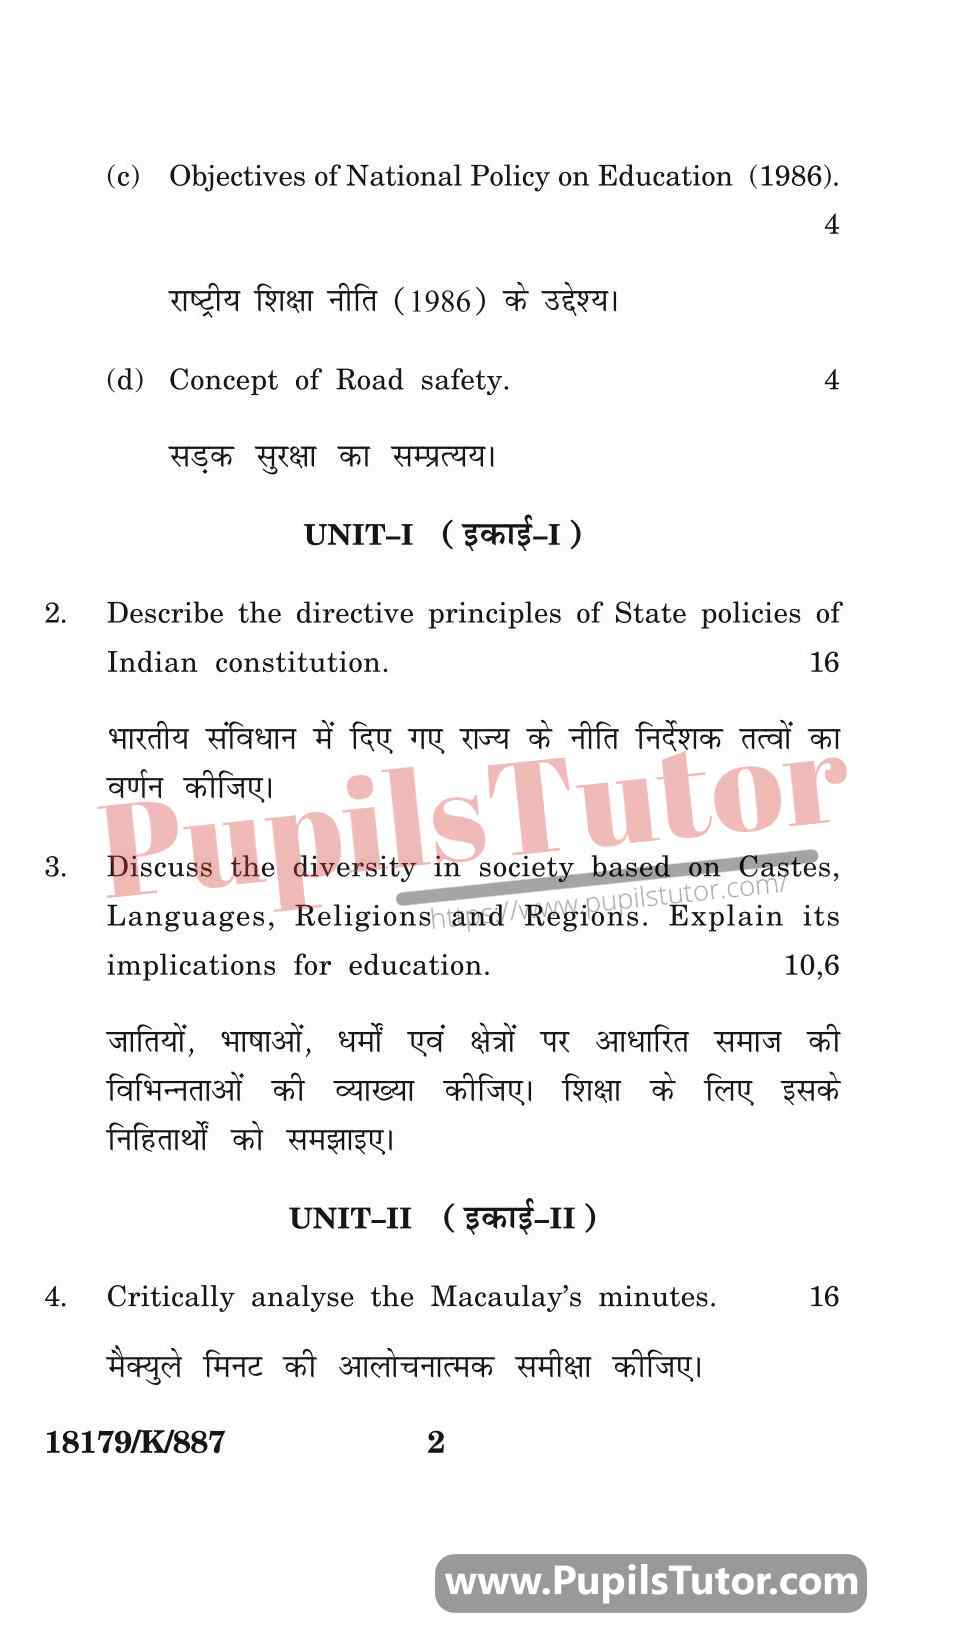 KUK (Kurukshetra University, Haryana) Contemporary India And Education Question Paper 2020 For B.Ed 1st And 2nd Year And All The 4 Semesters In English And Hindi Medium Free Download PDF - Page 2 - www.pupilstutor.com